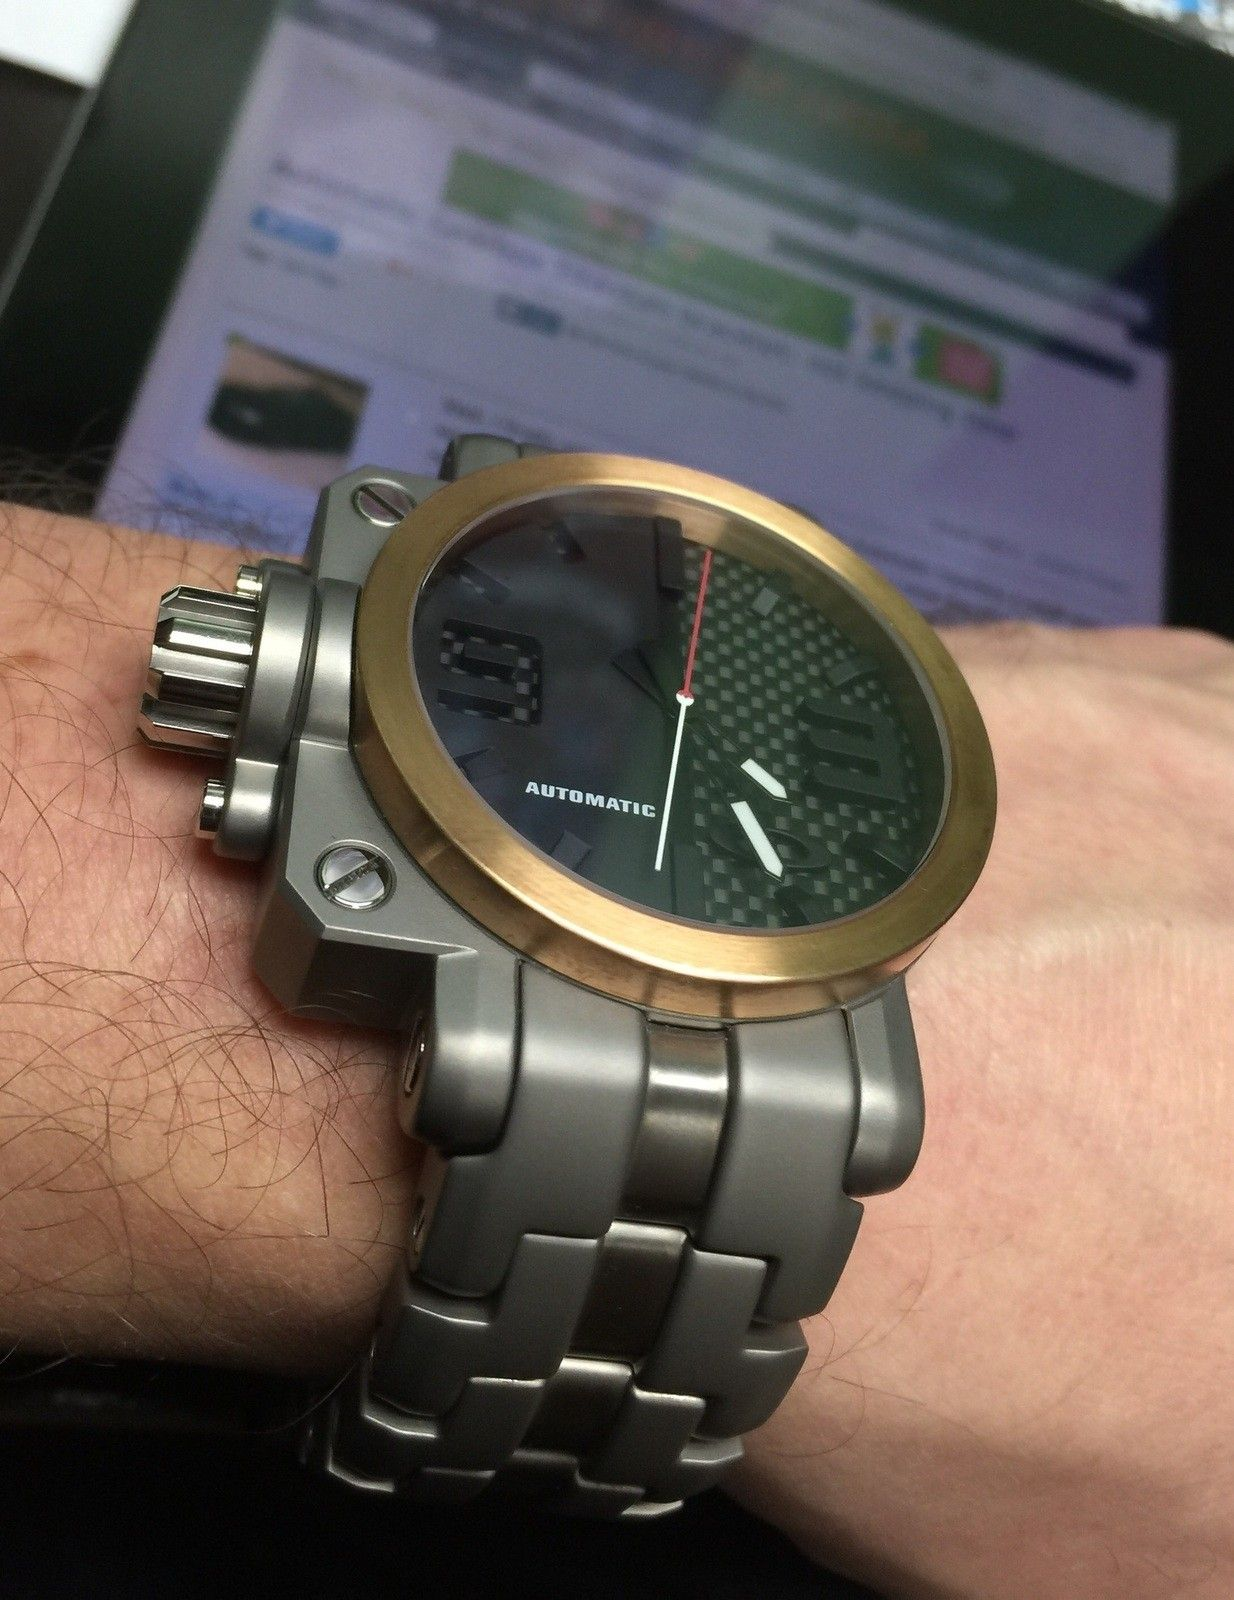 Automatic Gearbox Titanium bracelet: not keeping time - image.jpg